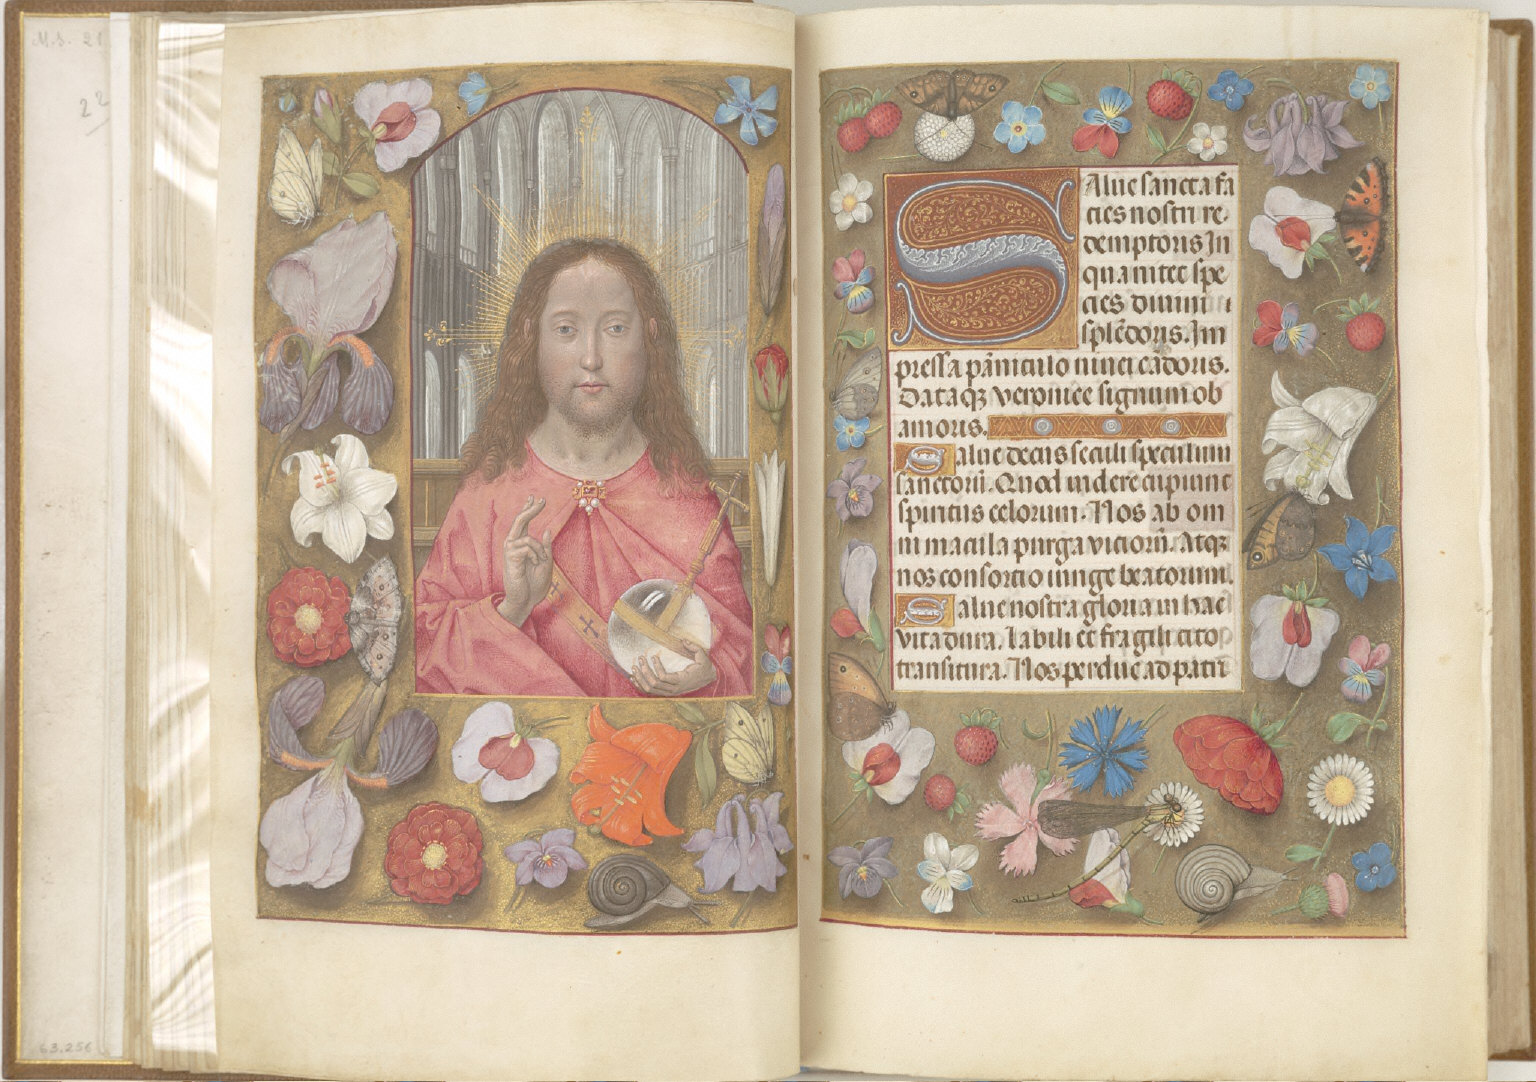 Hours of Queen Isabella the Catholic, Queen of Spain: Text - Salve Sancta Facies, fol. 15 (recto)